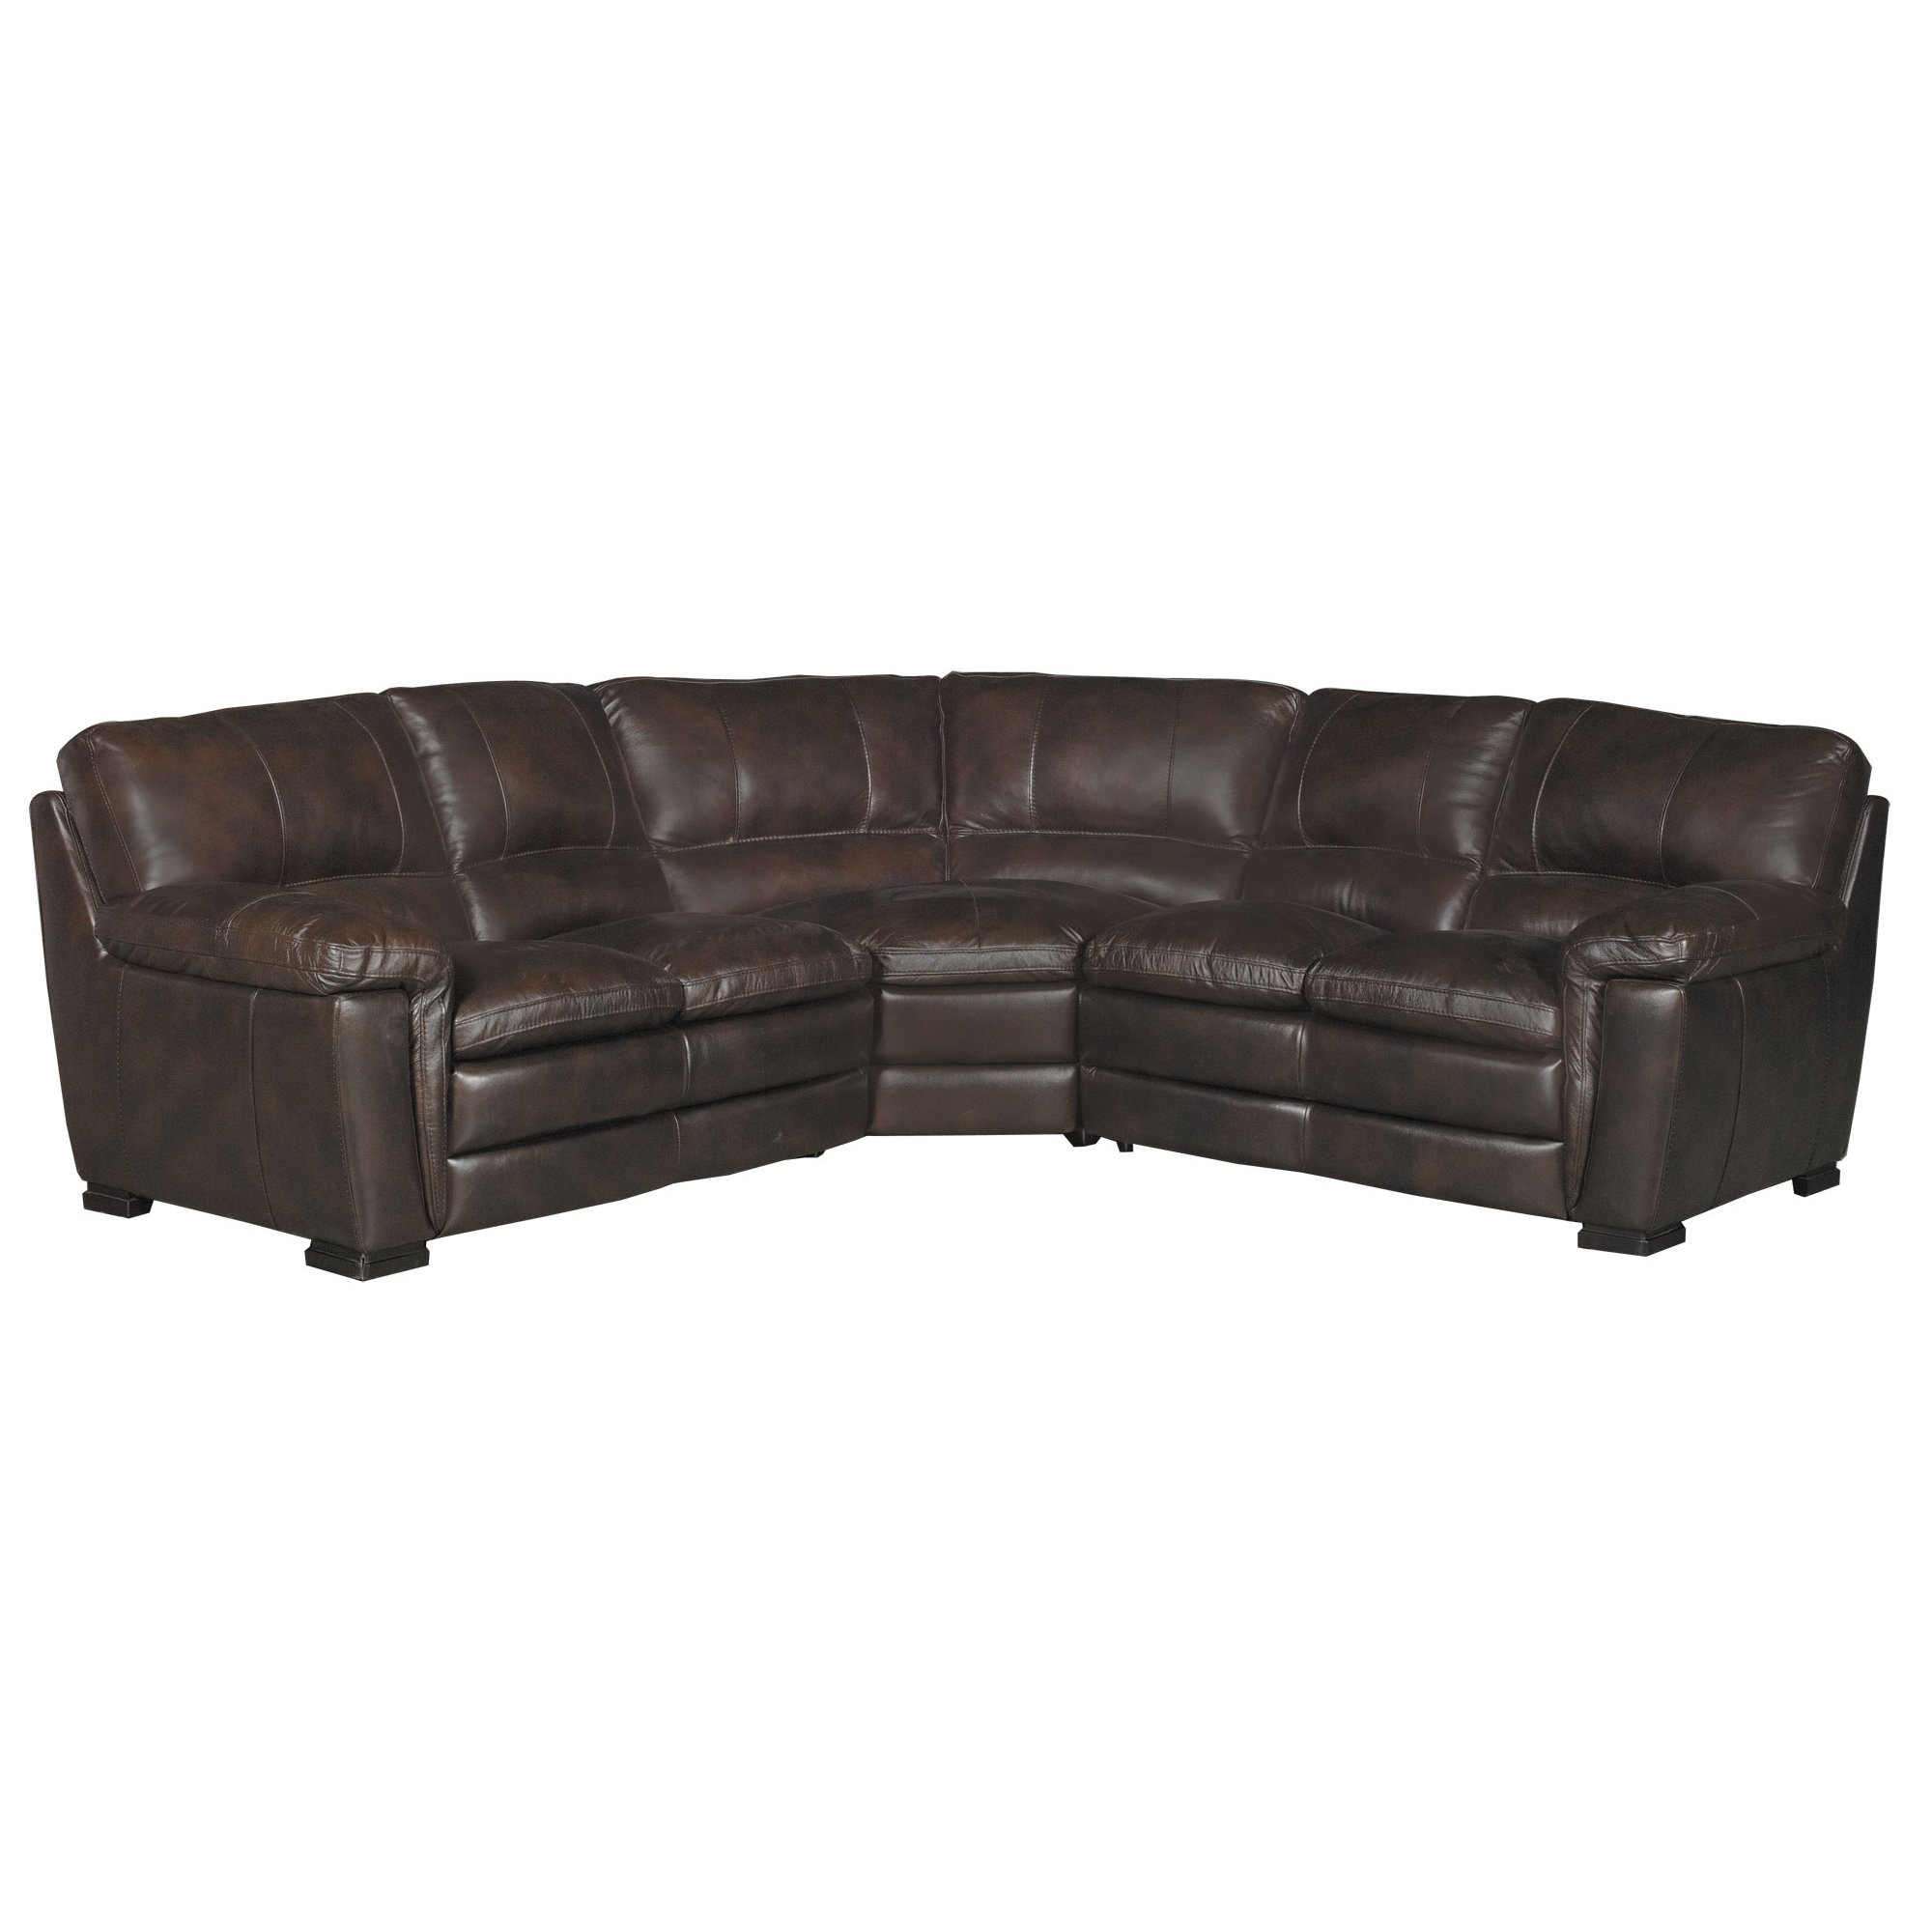 super popular 6ef87 2a055 Contemporary 3 Piece Brown Leather Sectional Sofa - Tanner